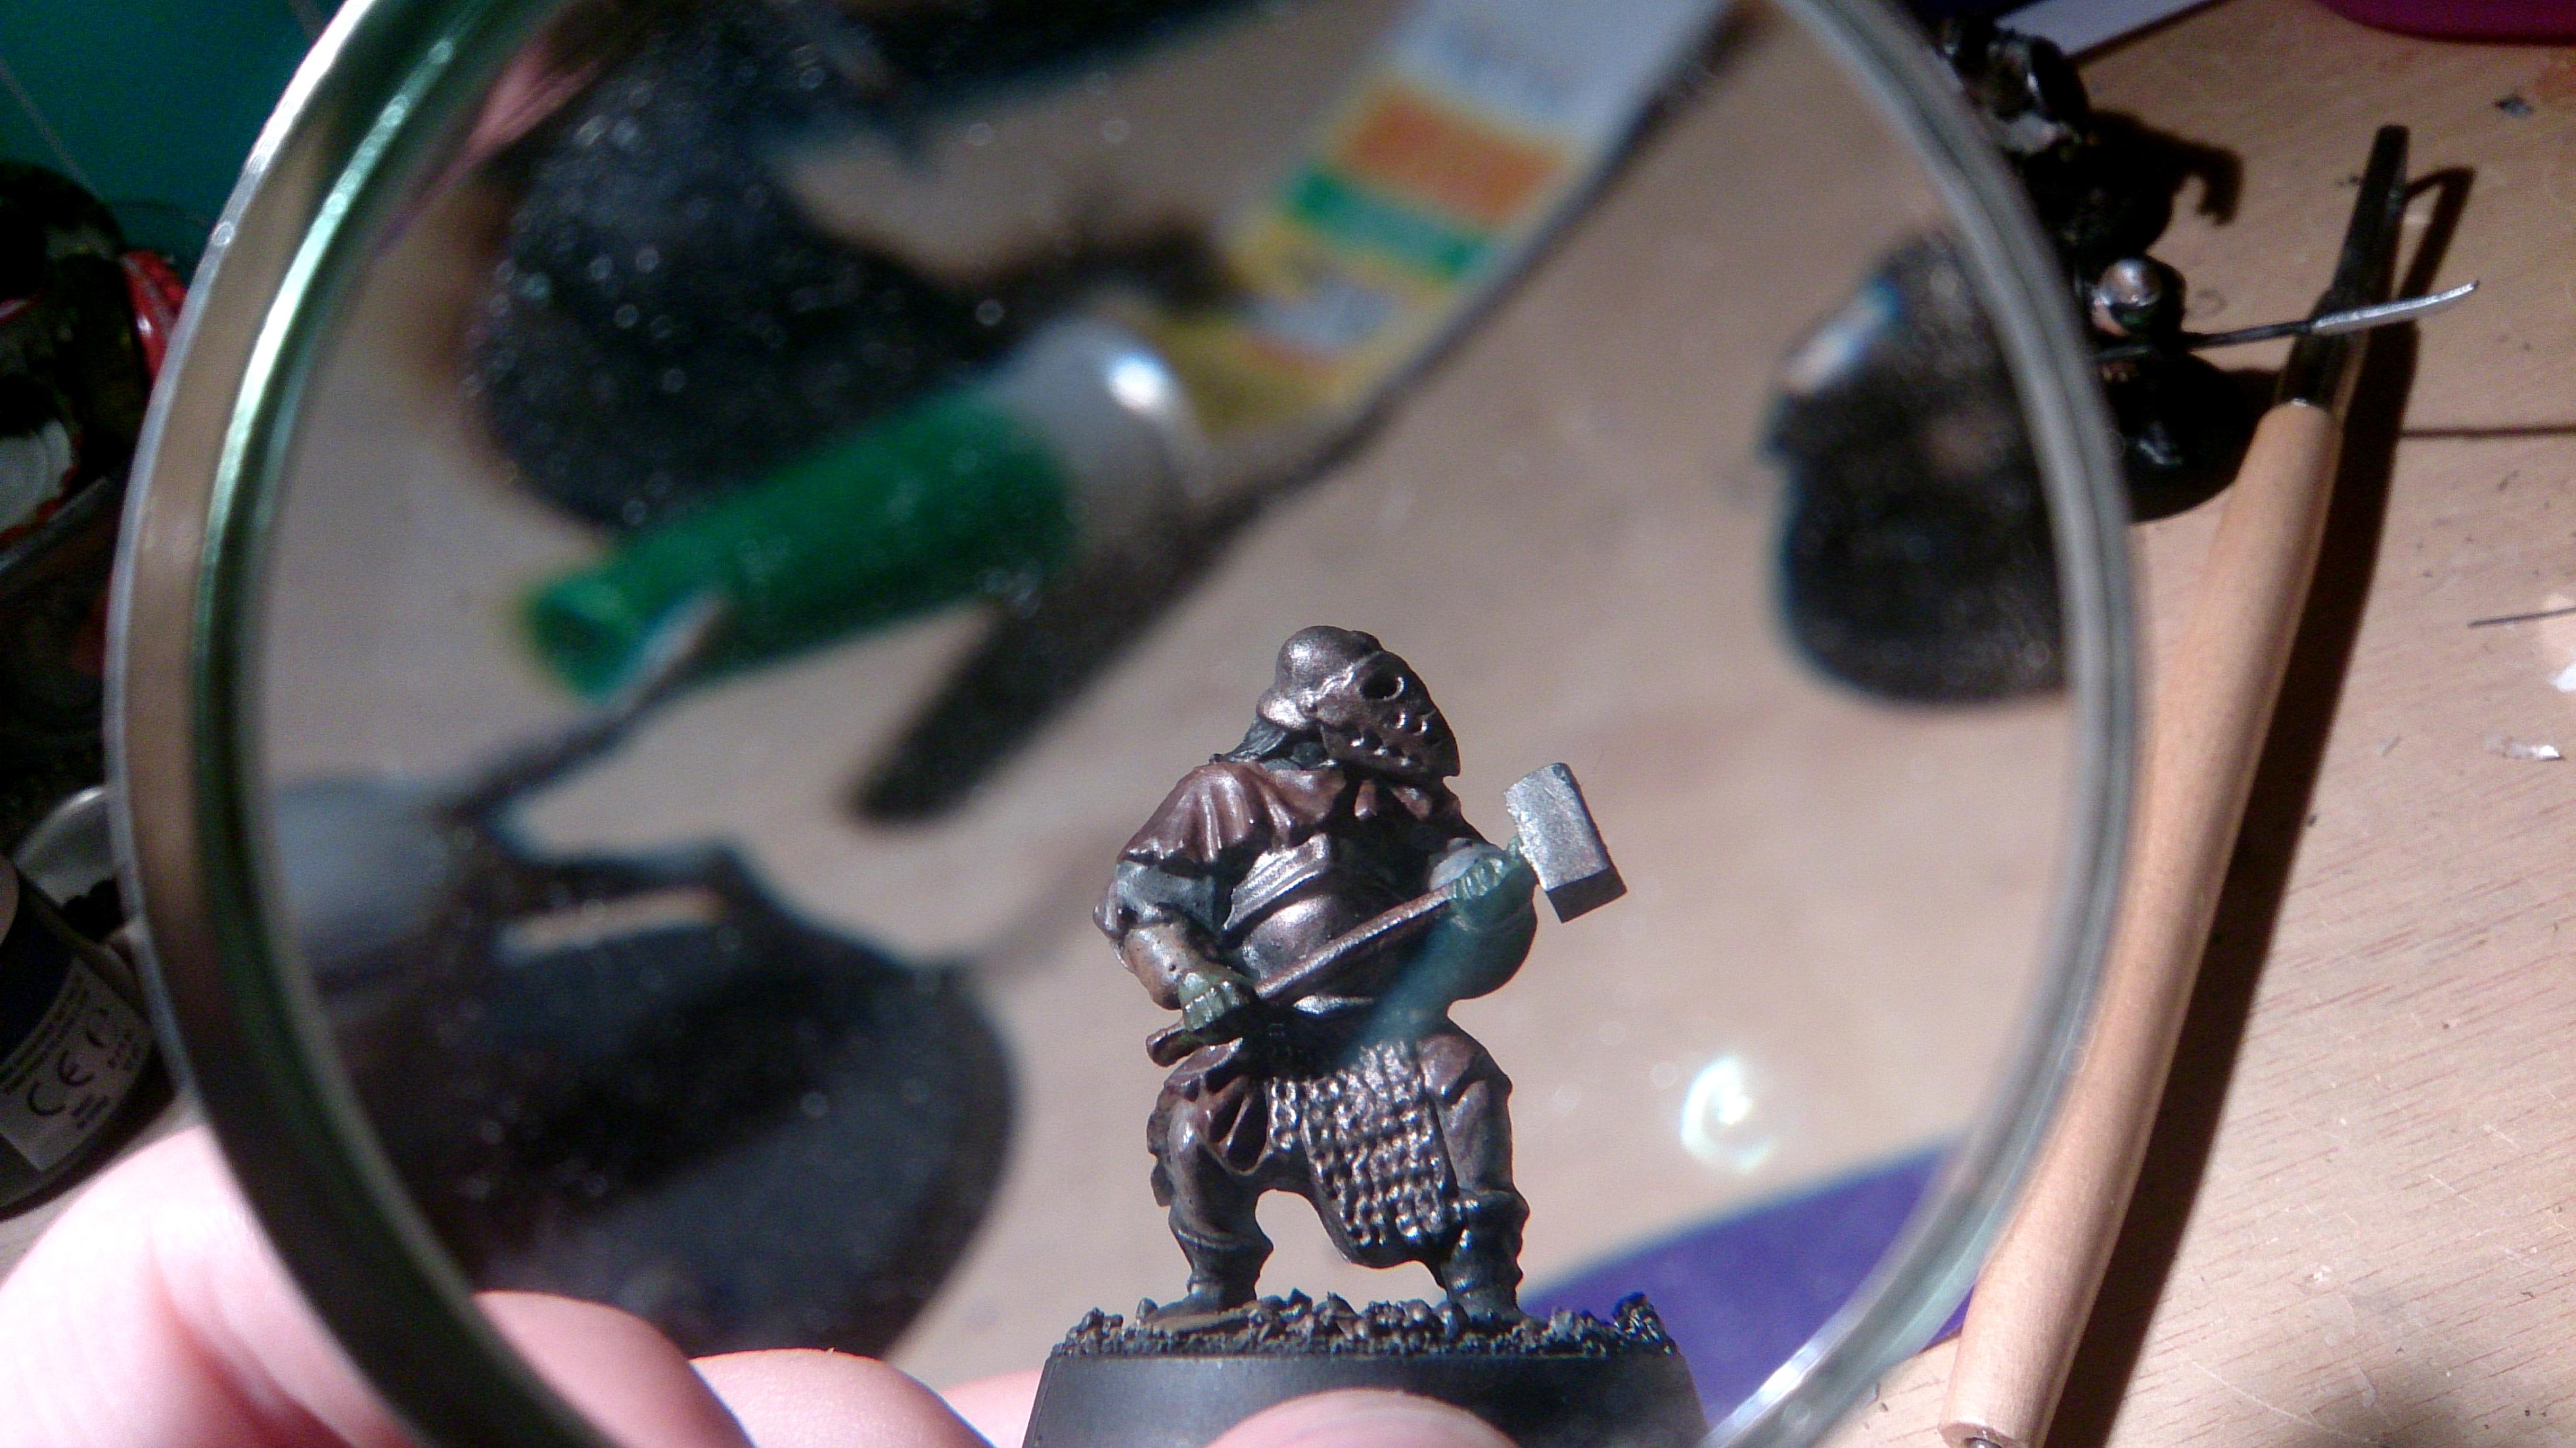 Macbeth Painted and Based